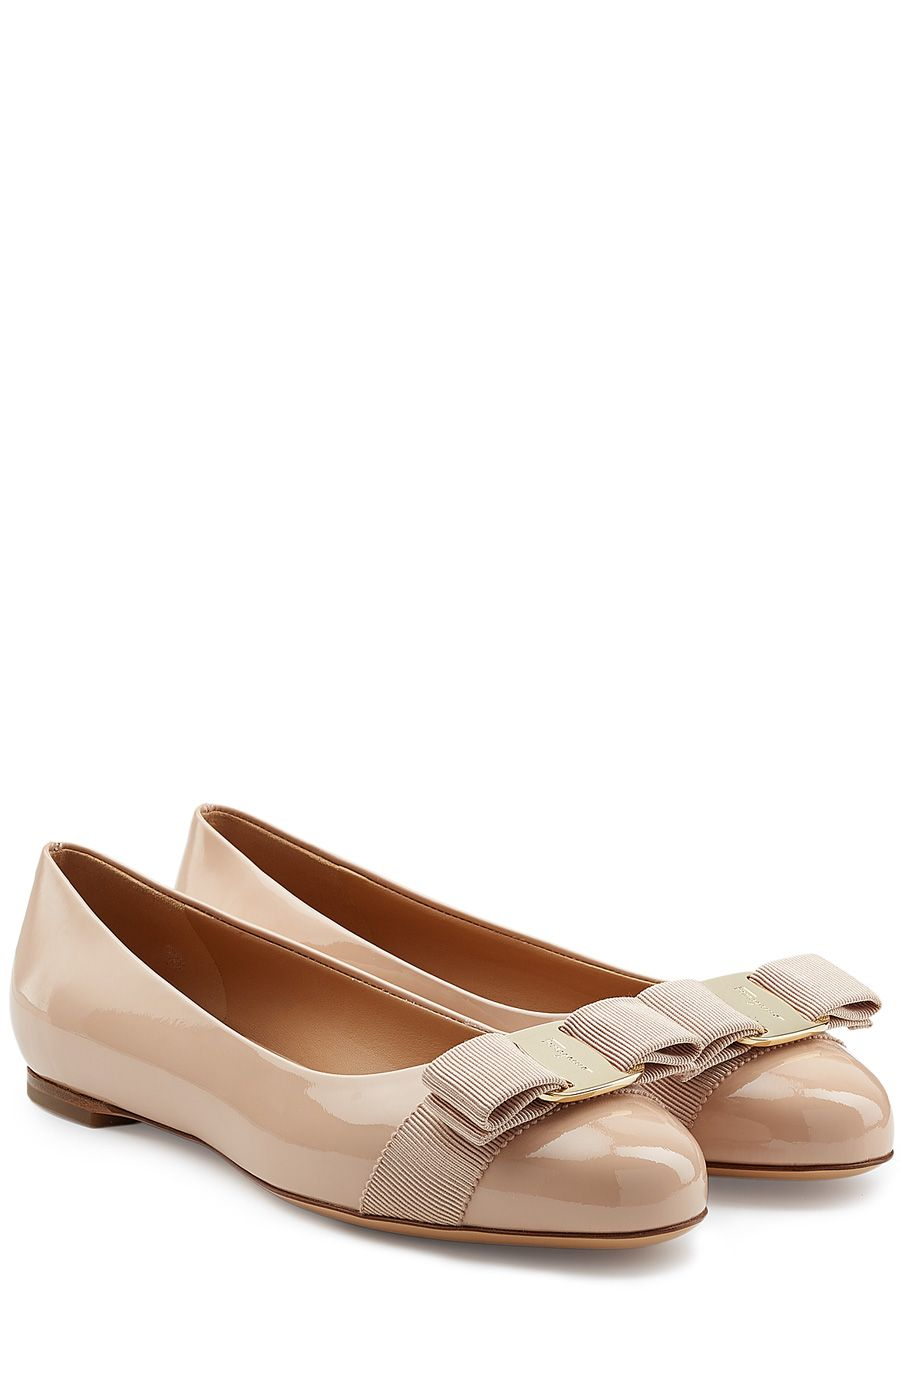 5a3e8a7748298 ... Shoes & Bags for Women. Varina Patent Leather Ballet Flats detail 0